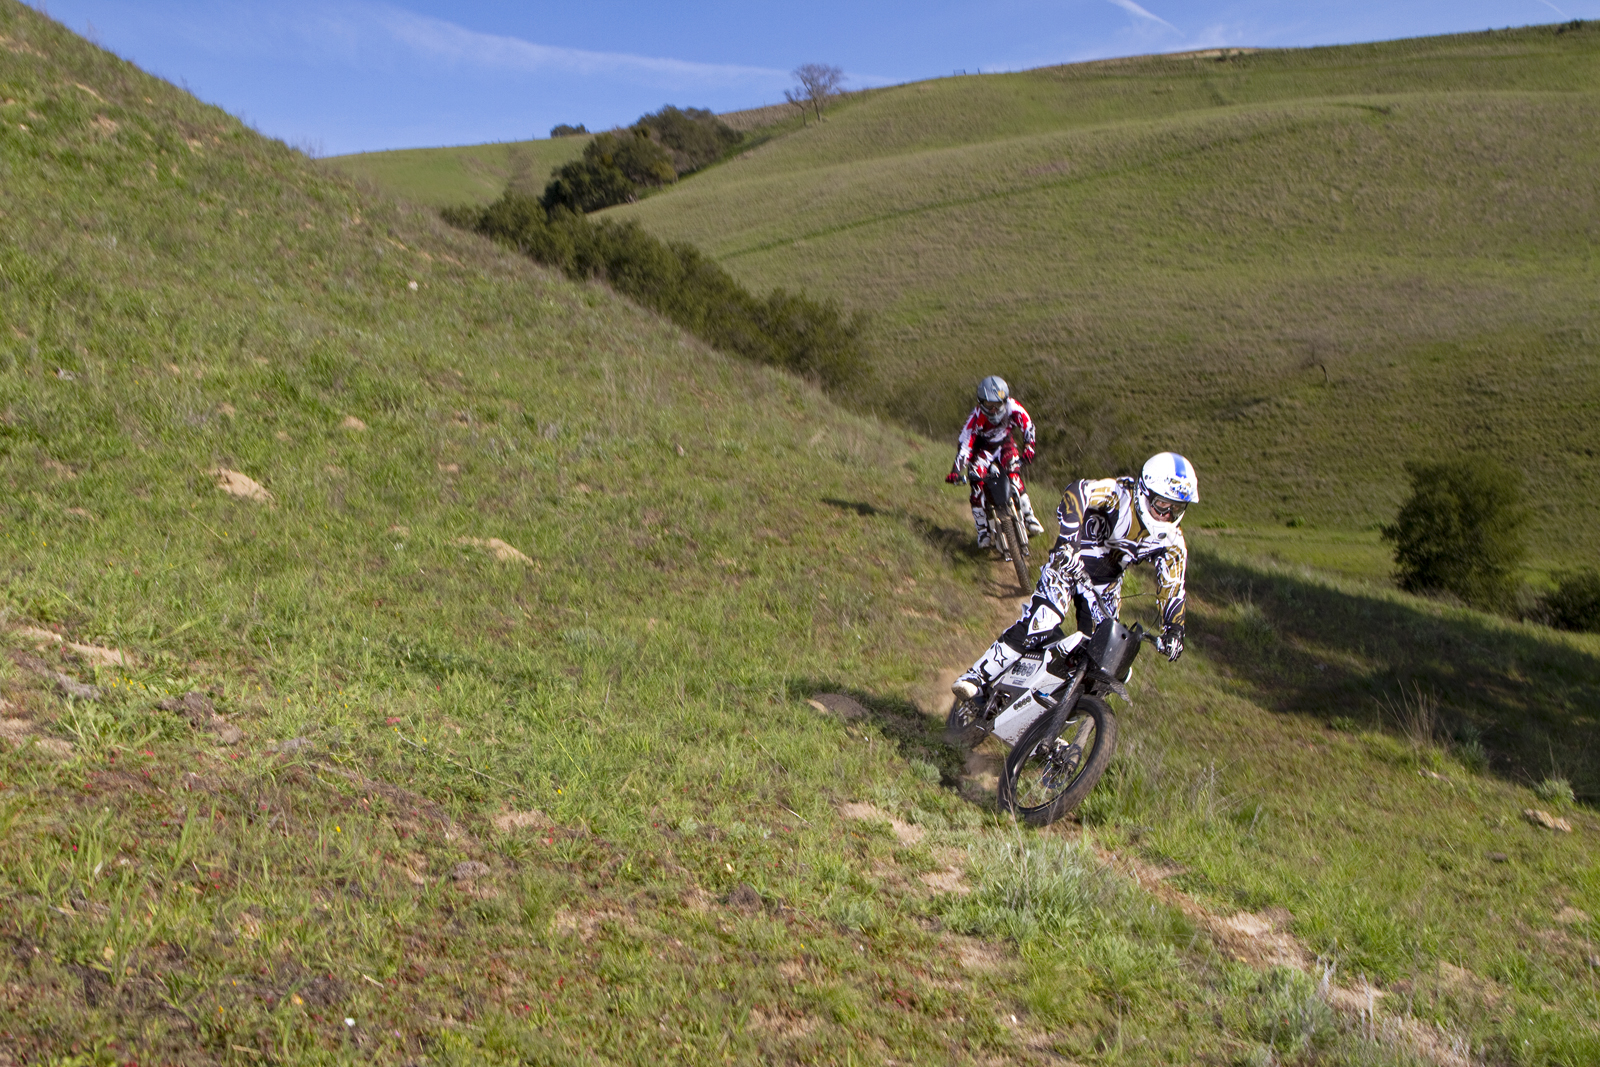 2010 Zero X Electric Motorcycle: Zaca Station - Two Single Track Riders